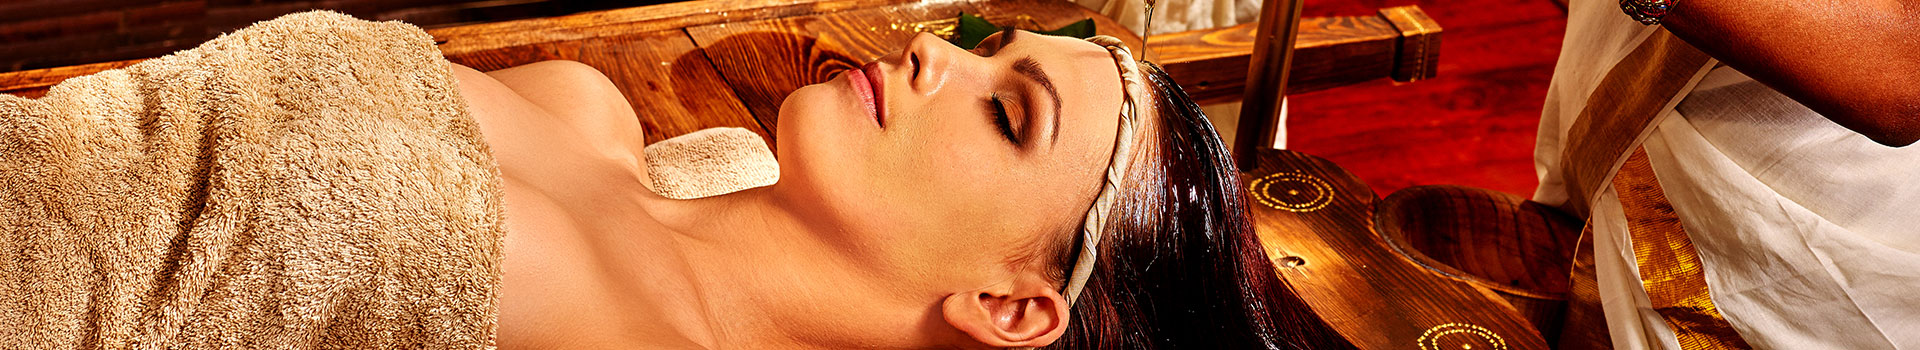 Pain Relief Massage in Al Wakrah, Qatar